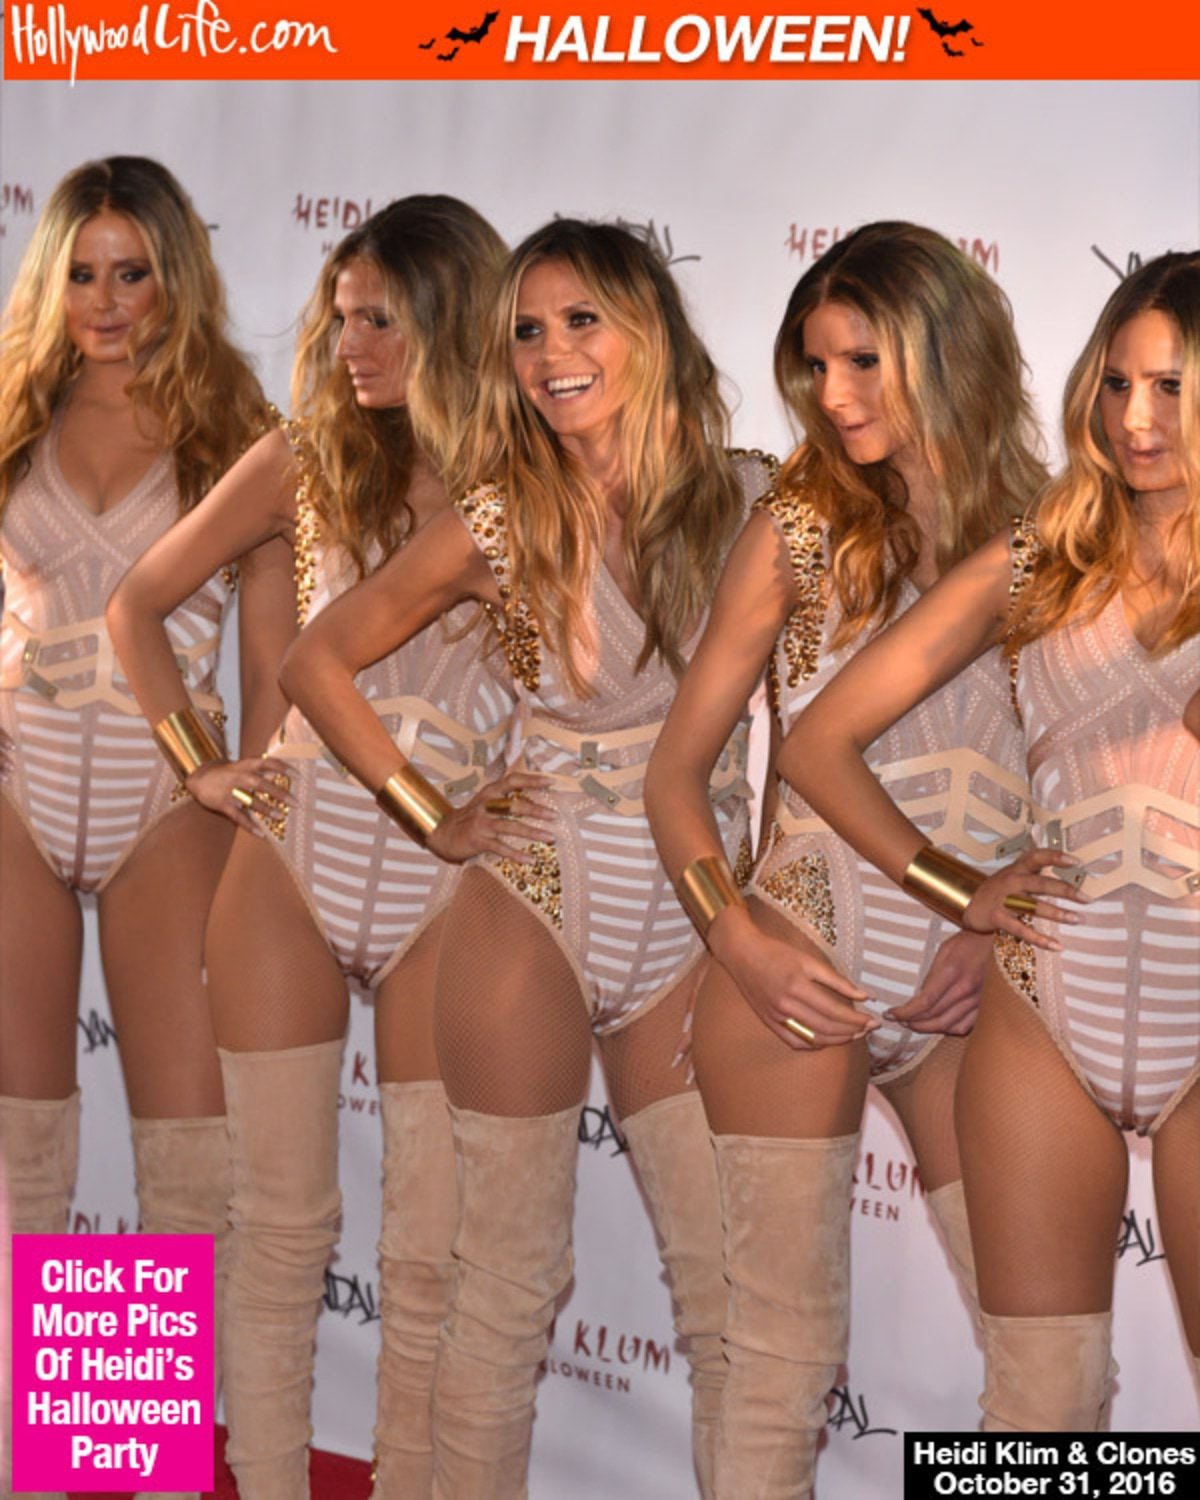 heidi-klum-and-clones-halloween-2016-lead